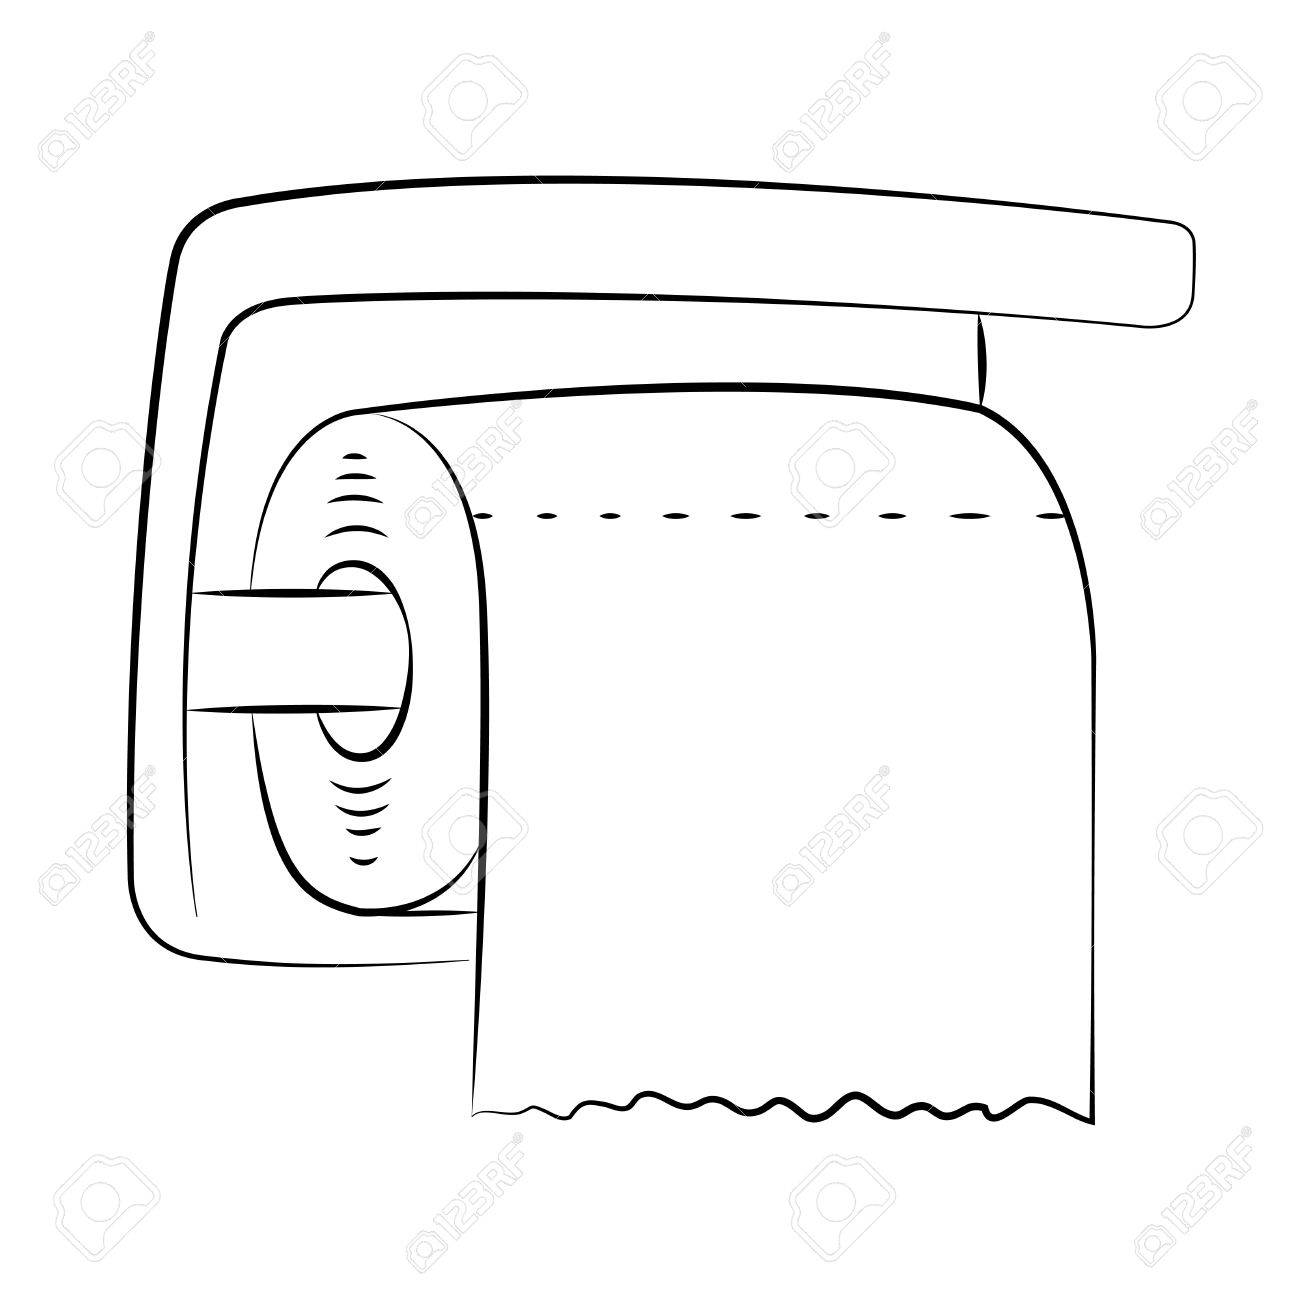 black outline vector toilet paper on white background. royalty free